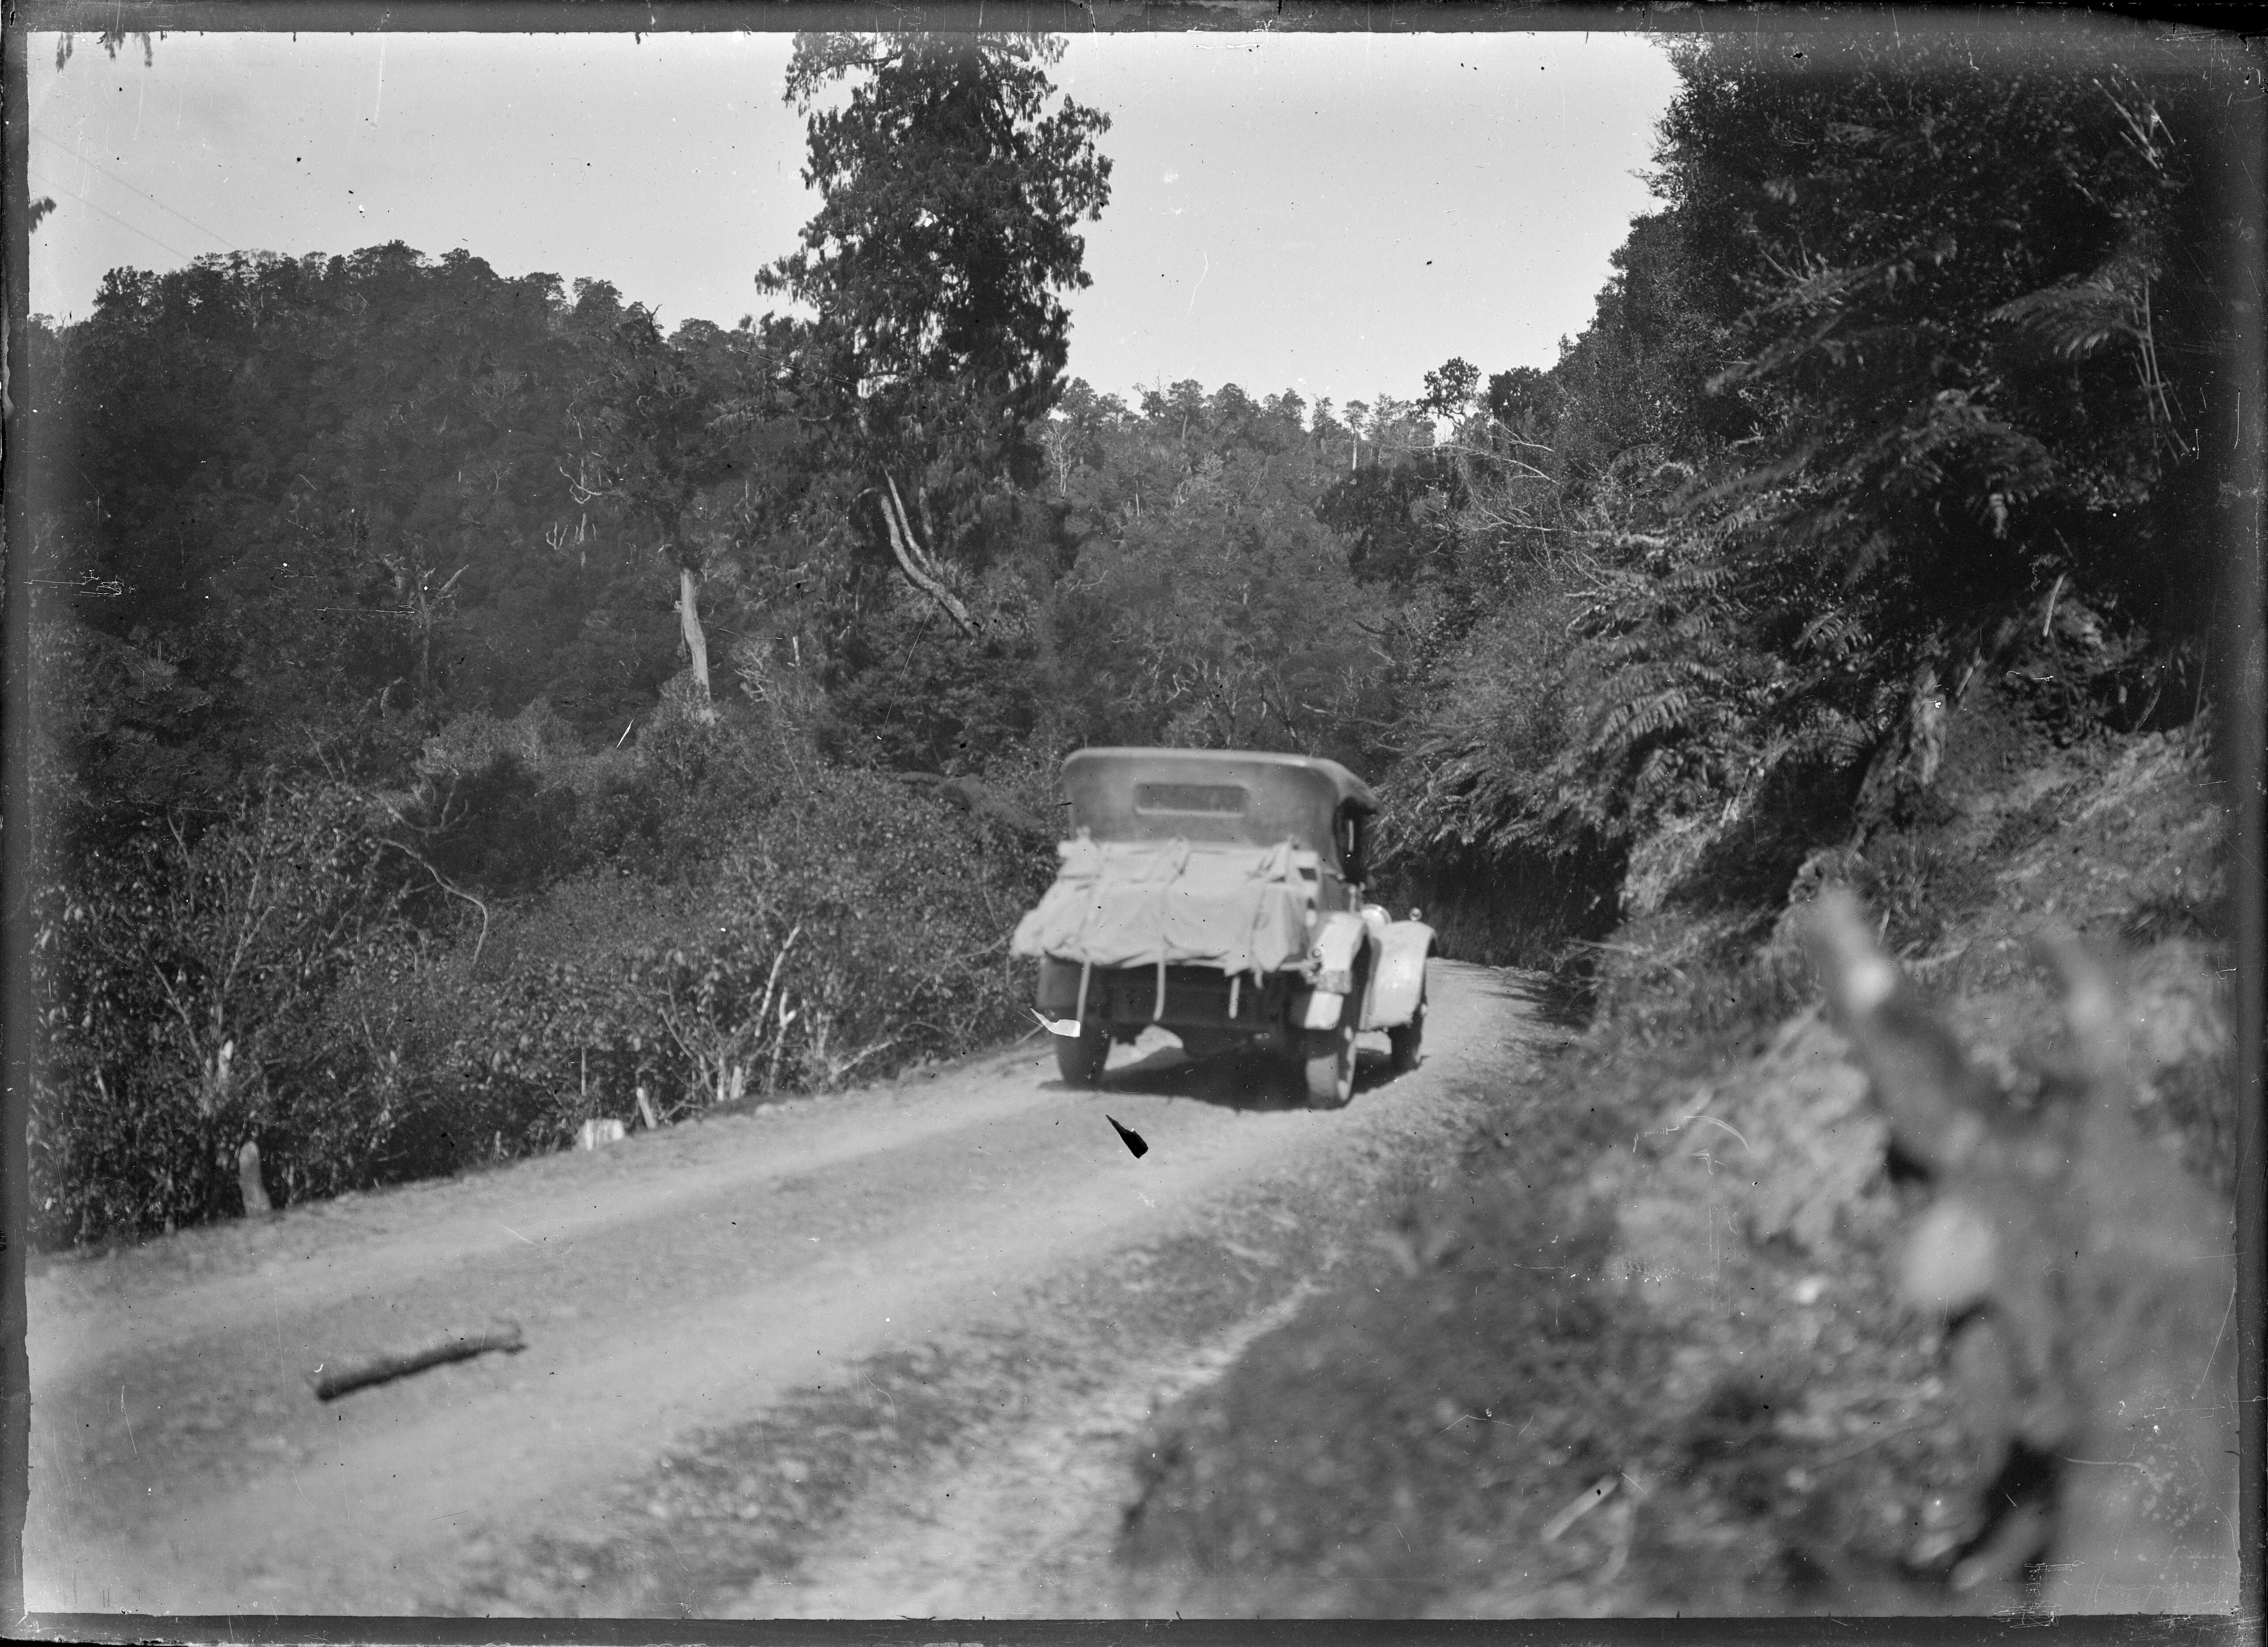 Rear view of a car on the Opotiki to Gisborne Road, in the Motu Bush. ATLIB 291736.png English: Rear view of a car in the bush near Motu on